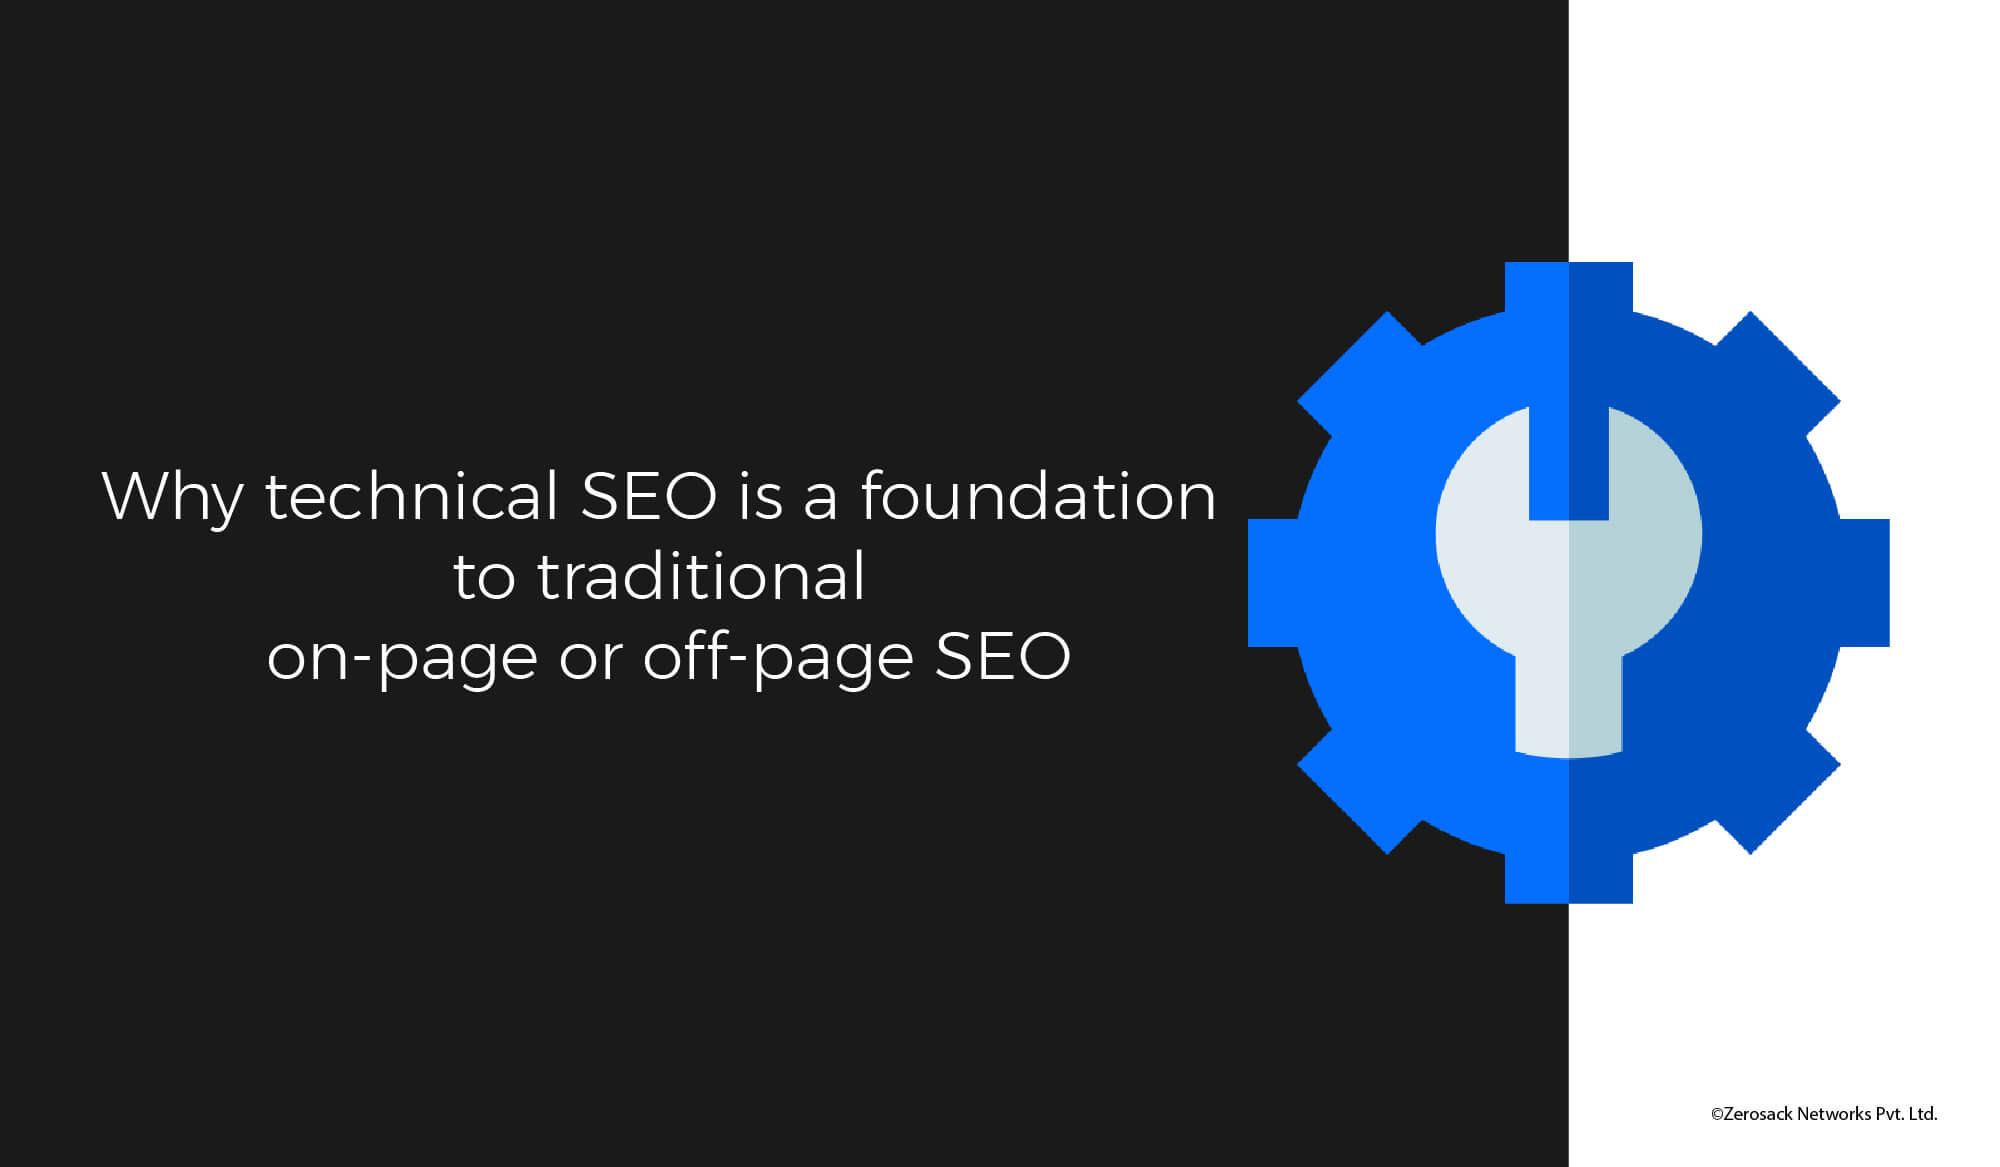 Why-technical-SEO-is-a-foundation-to-traditional-on-page-or-off-page-SEO